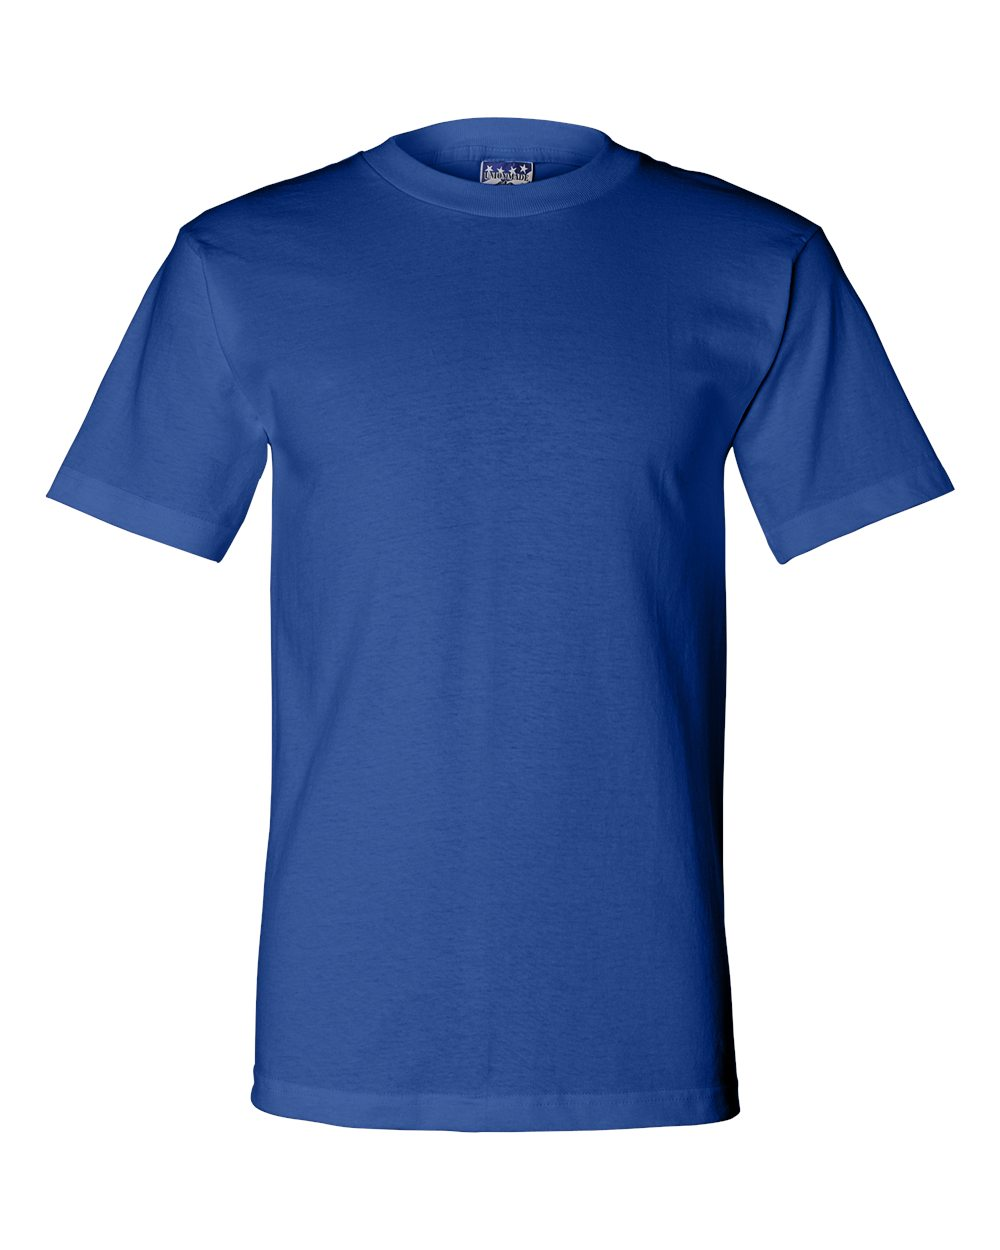 Bayside Bayside Union Made Short Sleeve T Shirt